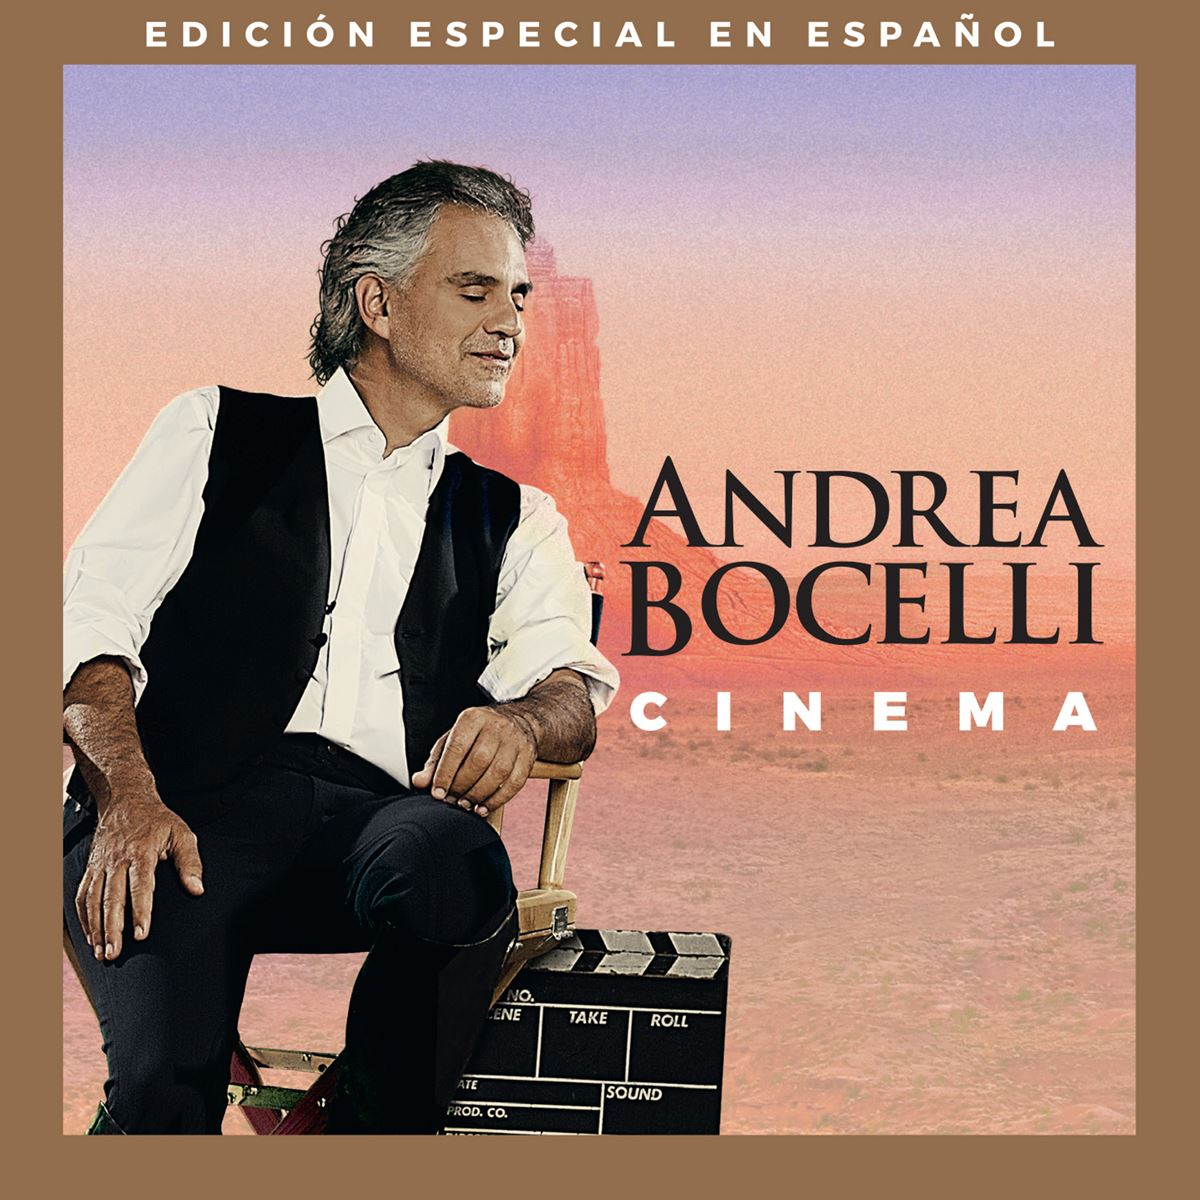 Cd andrea bocelli- cinema special edition  - Sanborns